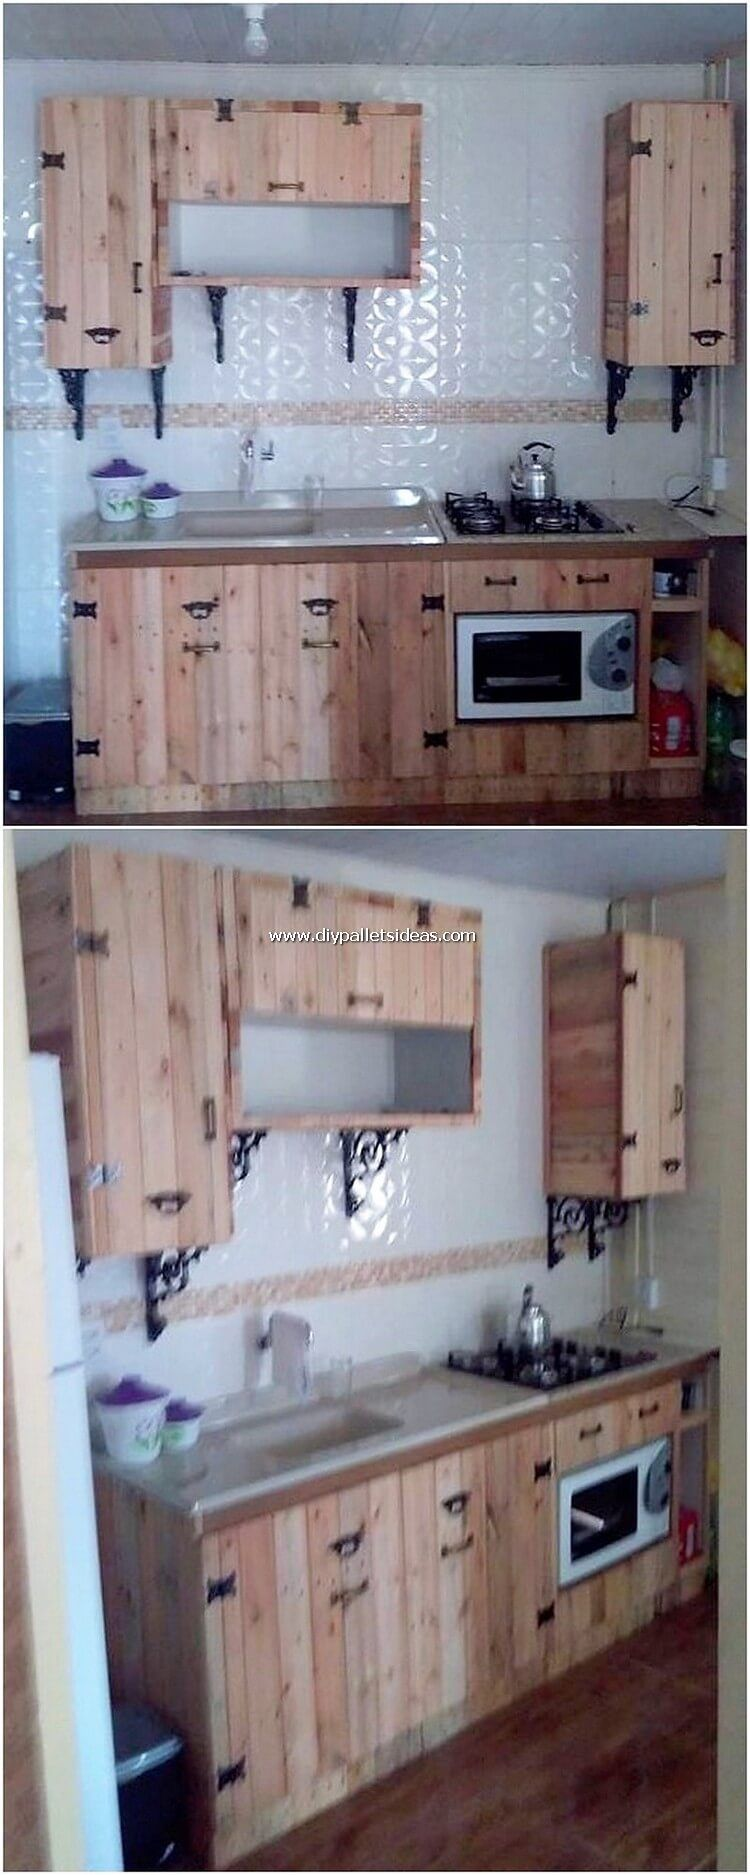 Setting Up The Use Of The Excellent Kitchen Cabinets Furniture In The House Kitchen Room Will Diy Kitchen Cabinets Build Diy Kitchen Cabinets Pallet Furniture